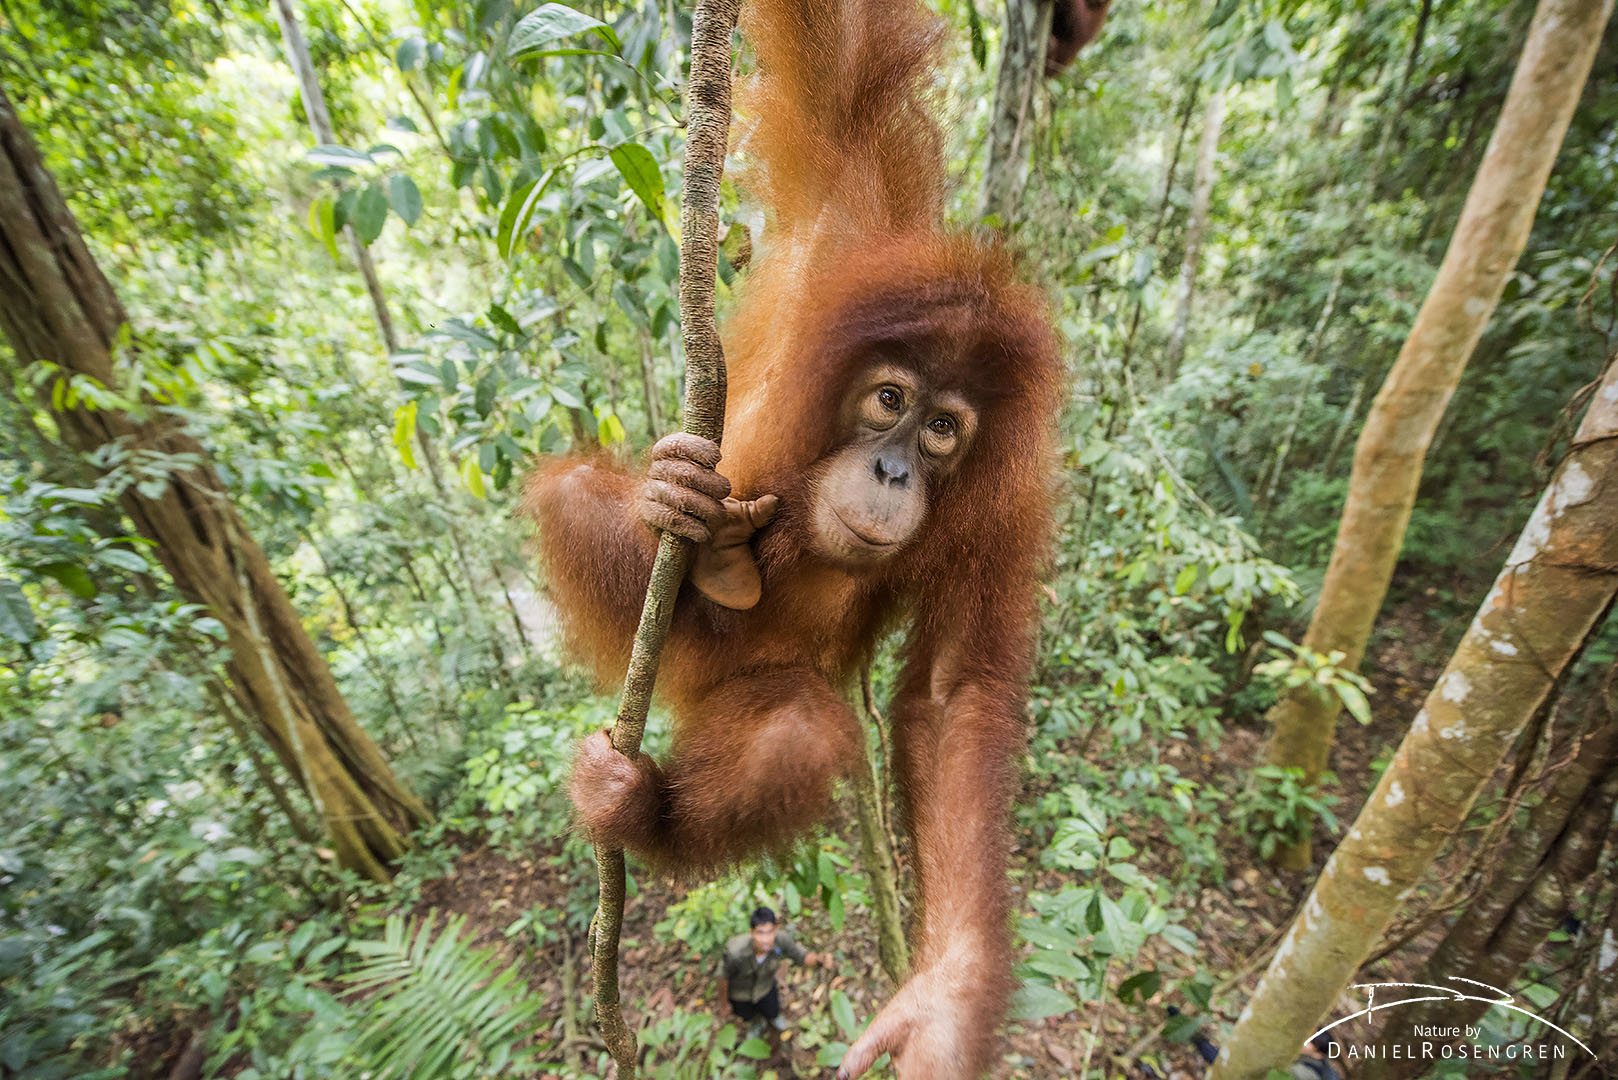 A young Orang-utan out on a limb, her trainer is seen below. © Daniel Rosengren